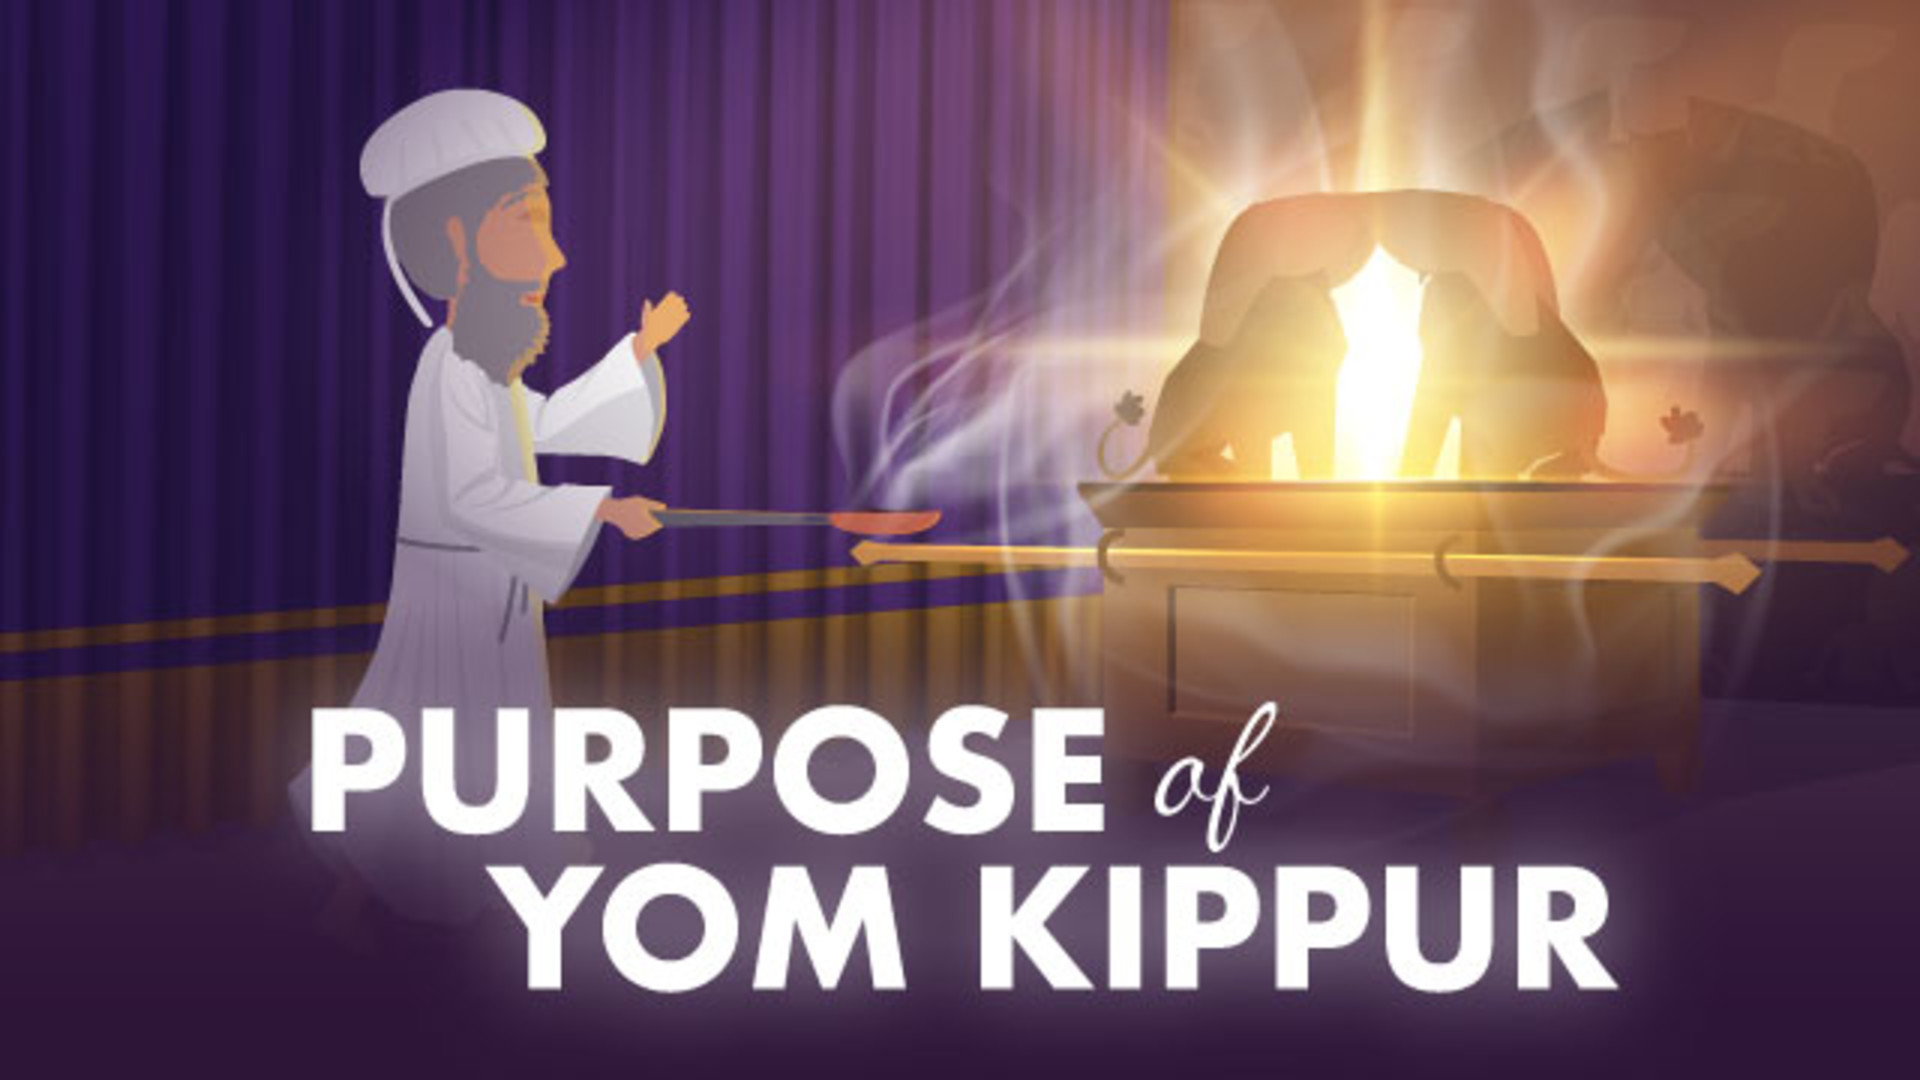 What is Yom Kippur meaning purpose